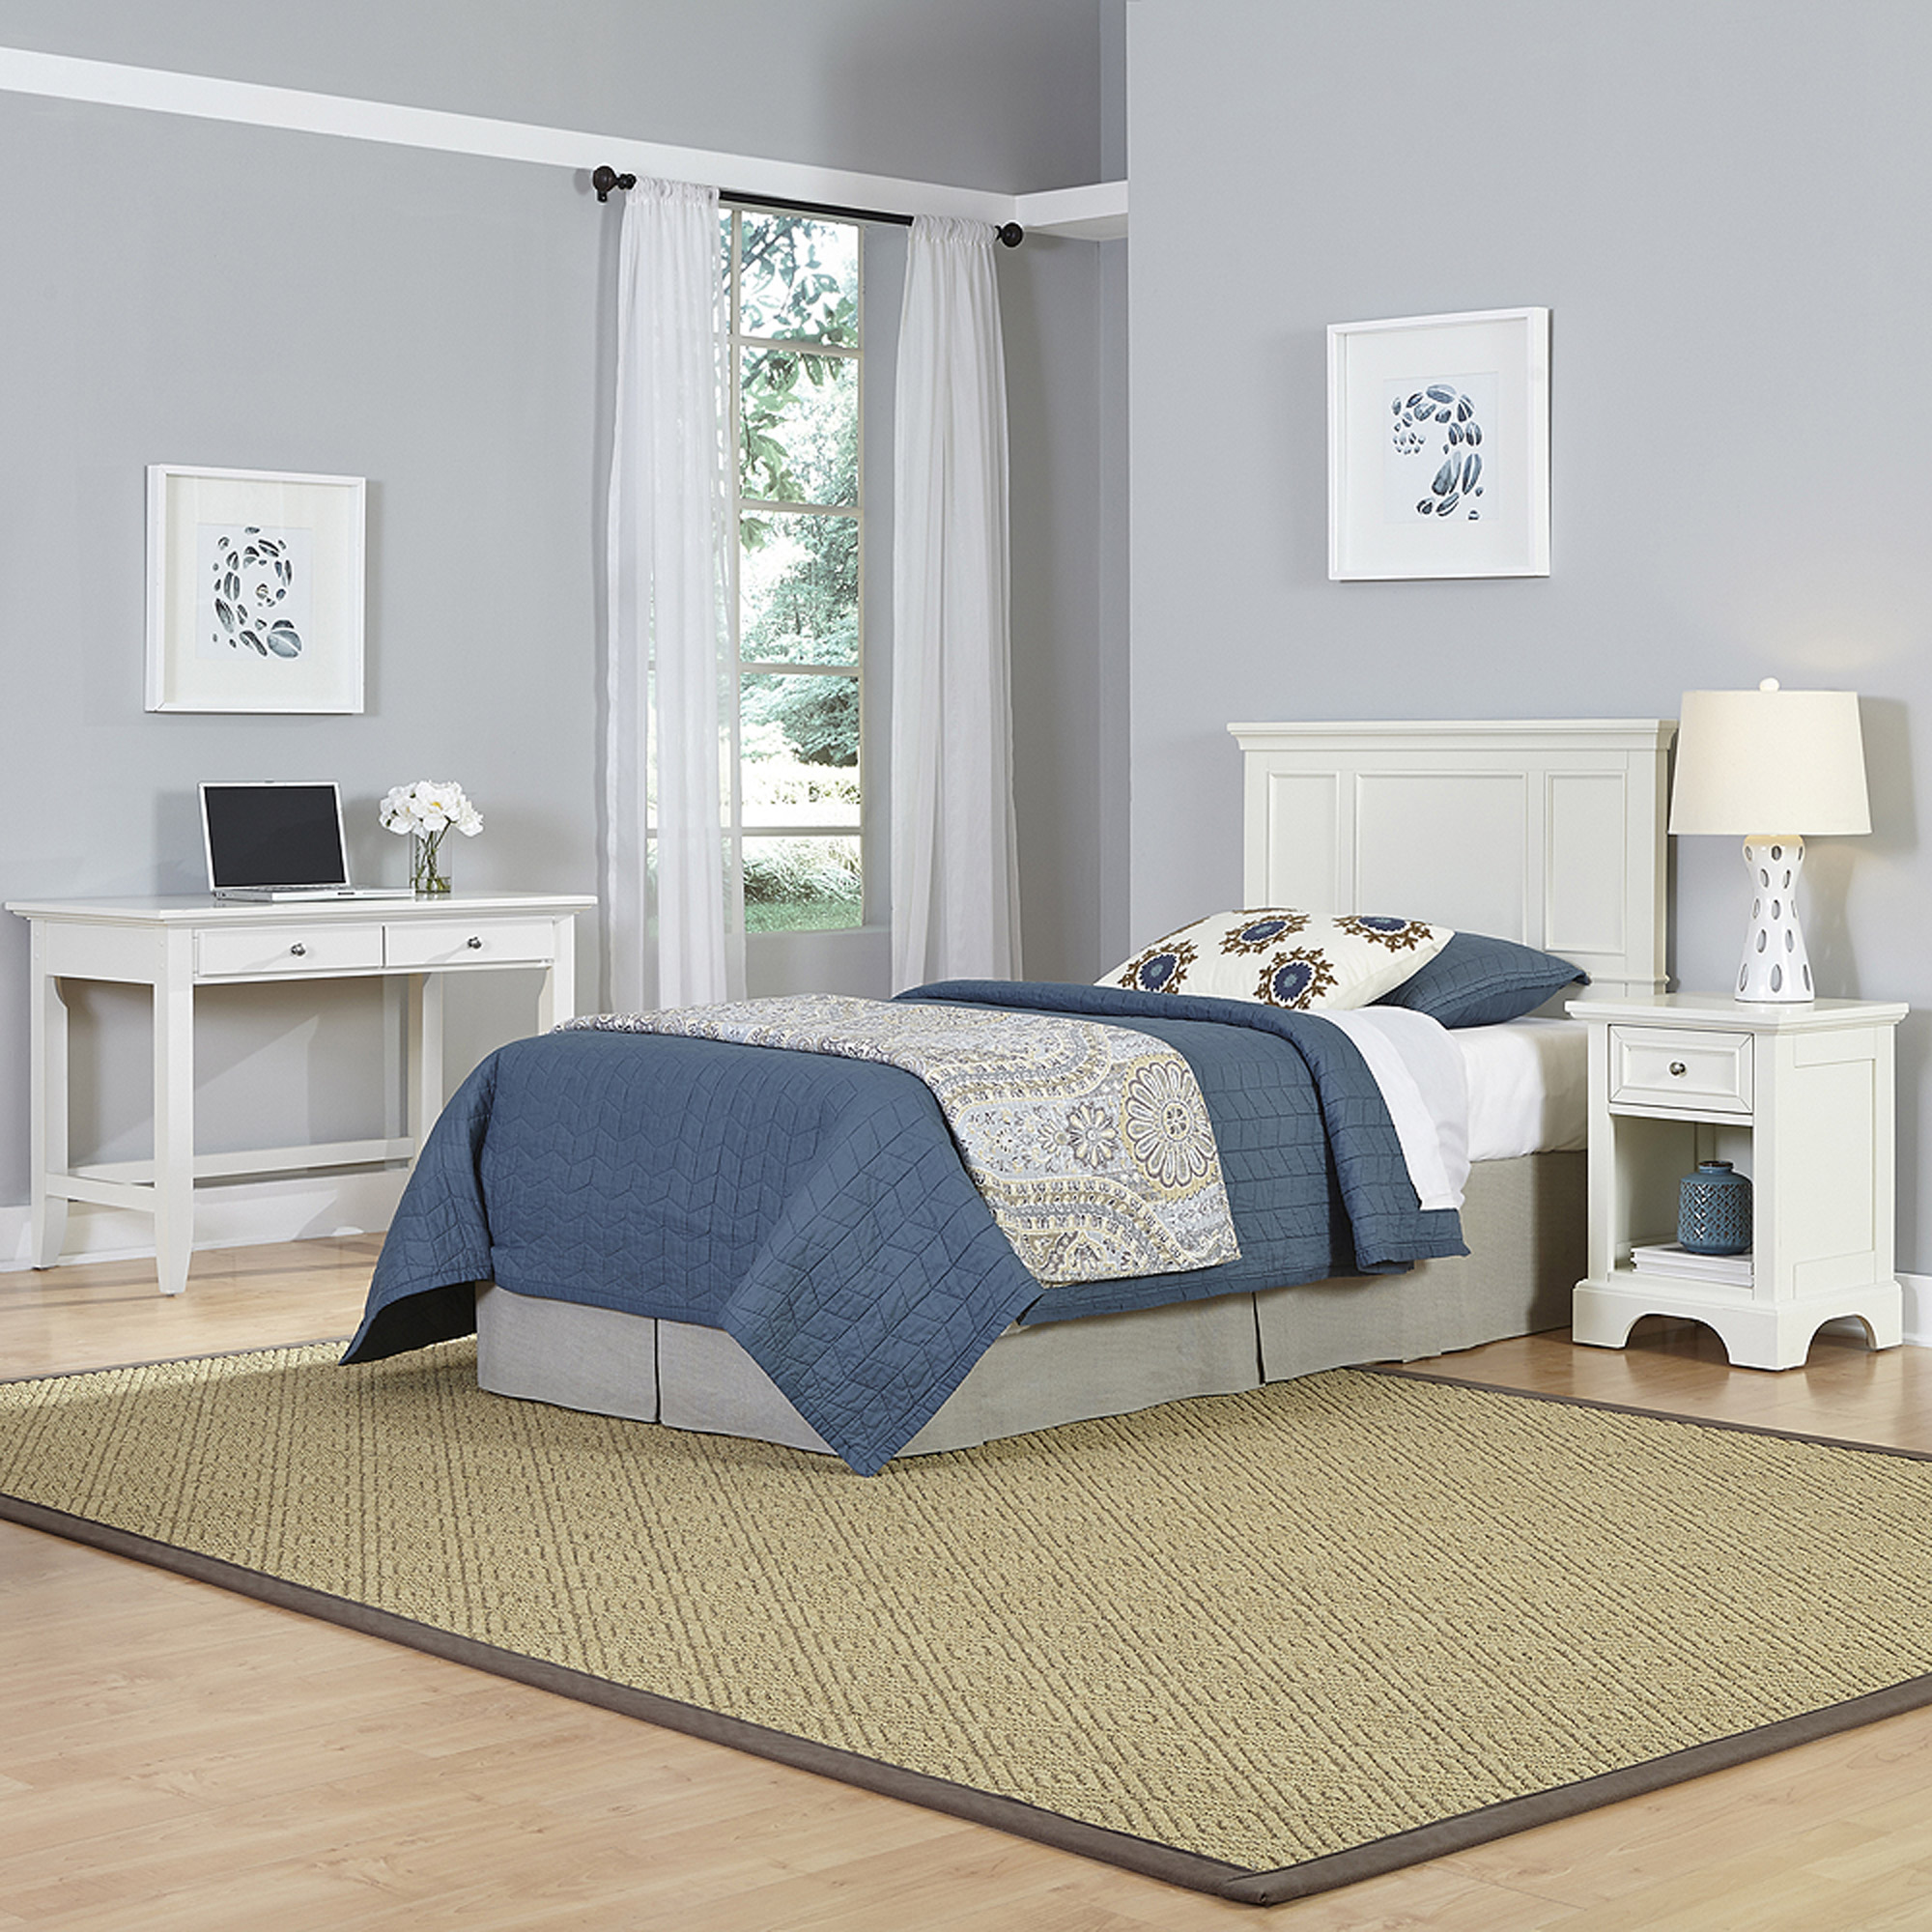 Home Styles Naples Twin Headboard, Night Stand and Student Desk